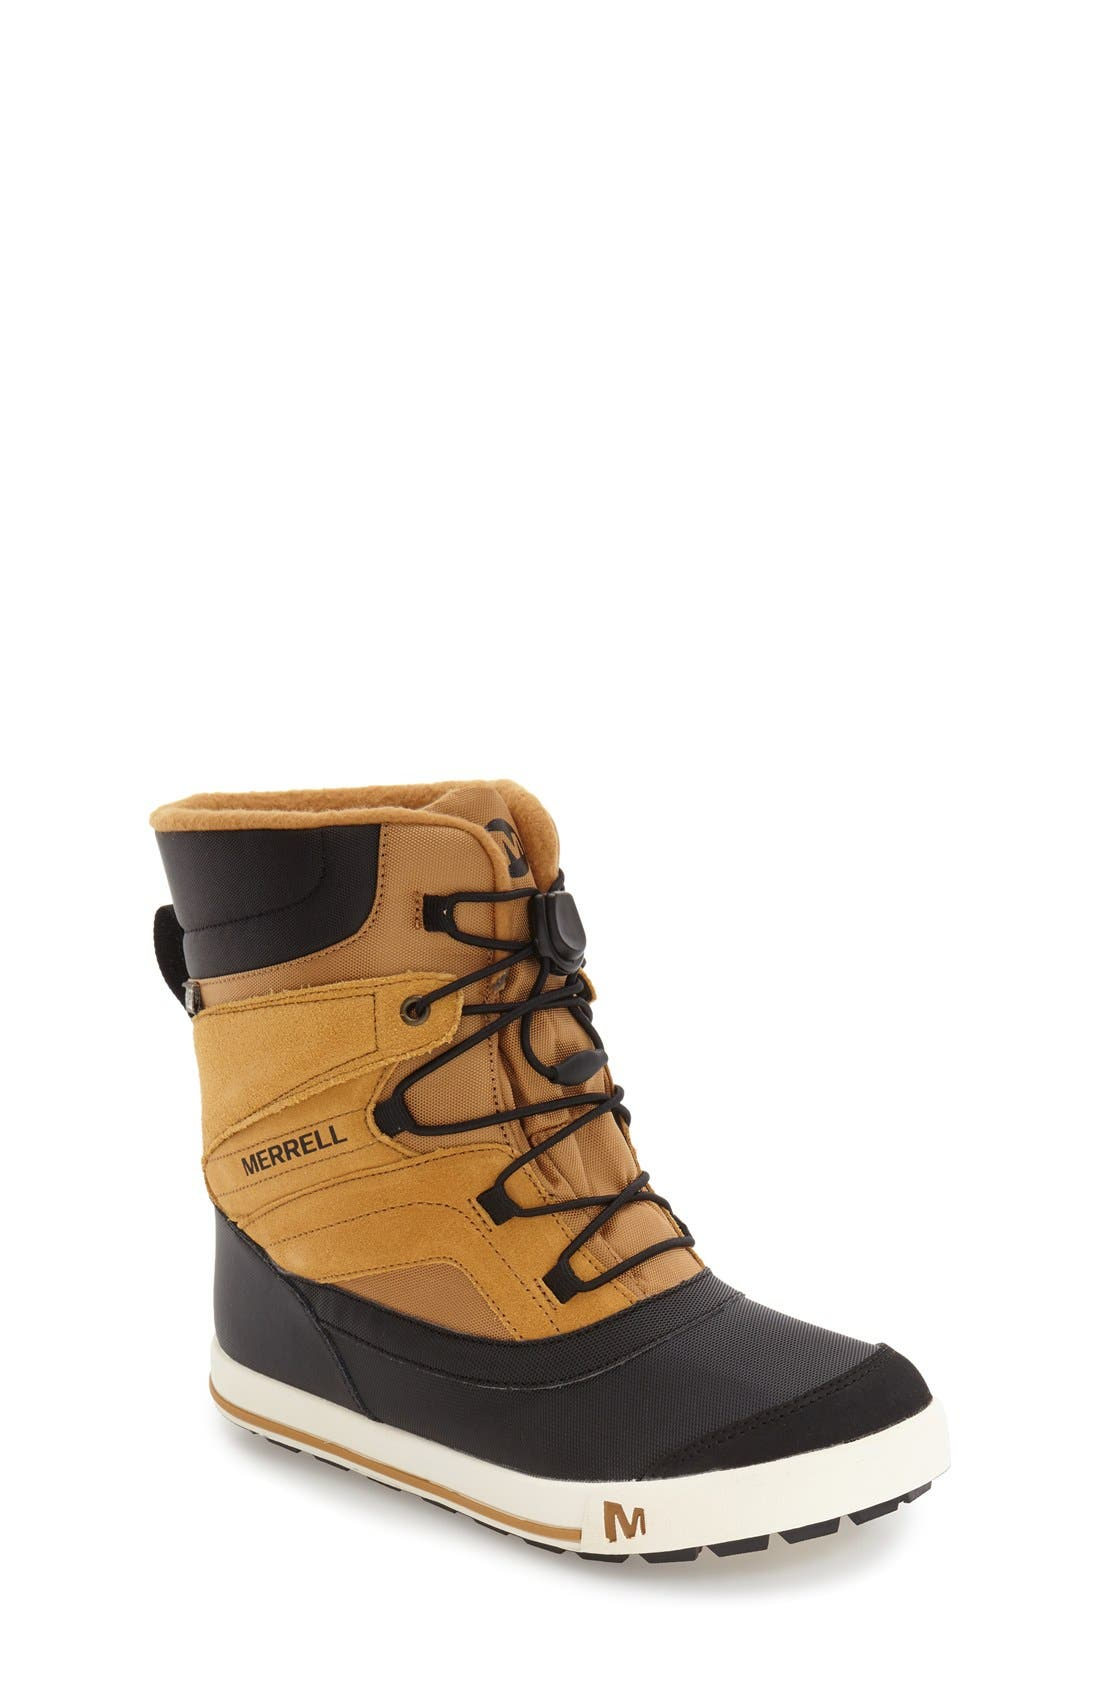 'Snow Bank 2' Waterproof Boot,                             Main thumbnail 1, color,                             Wheat/ Black Leather